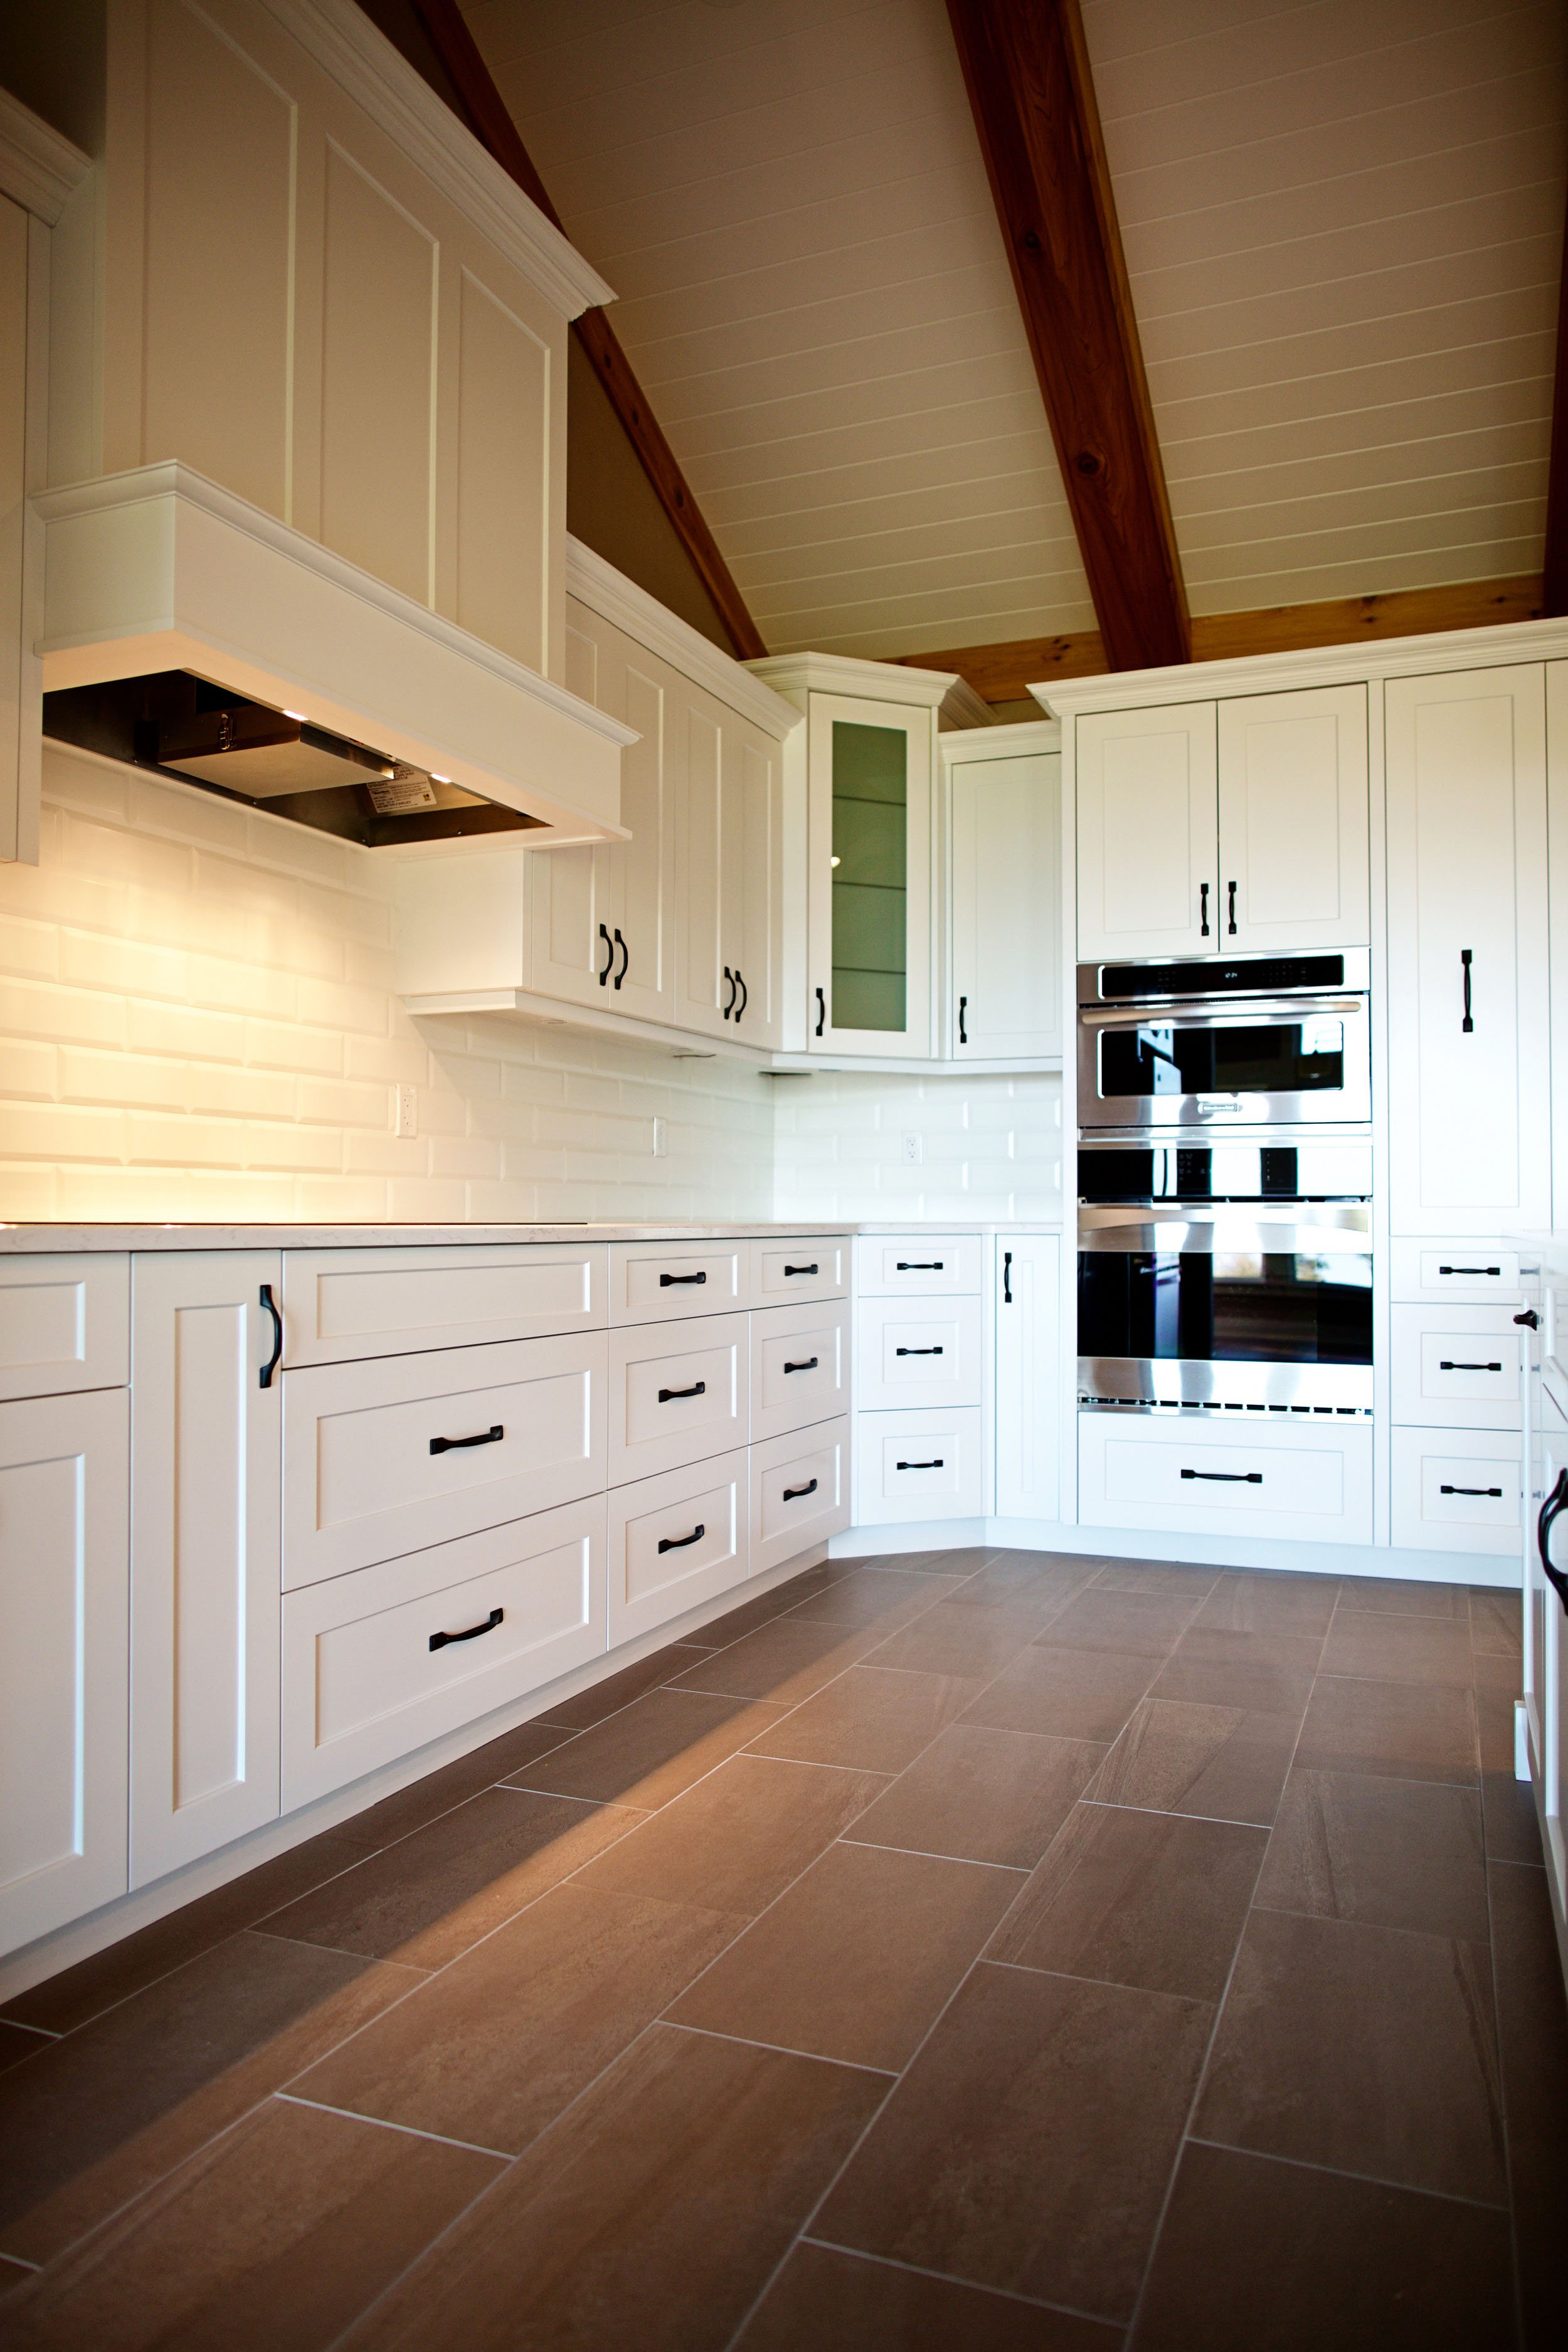 Bespoke Cabinetry